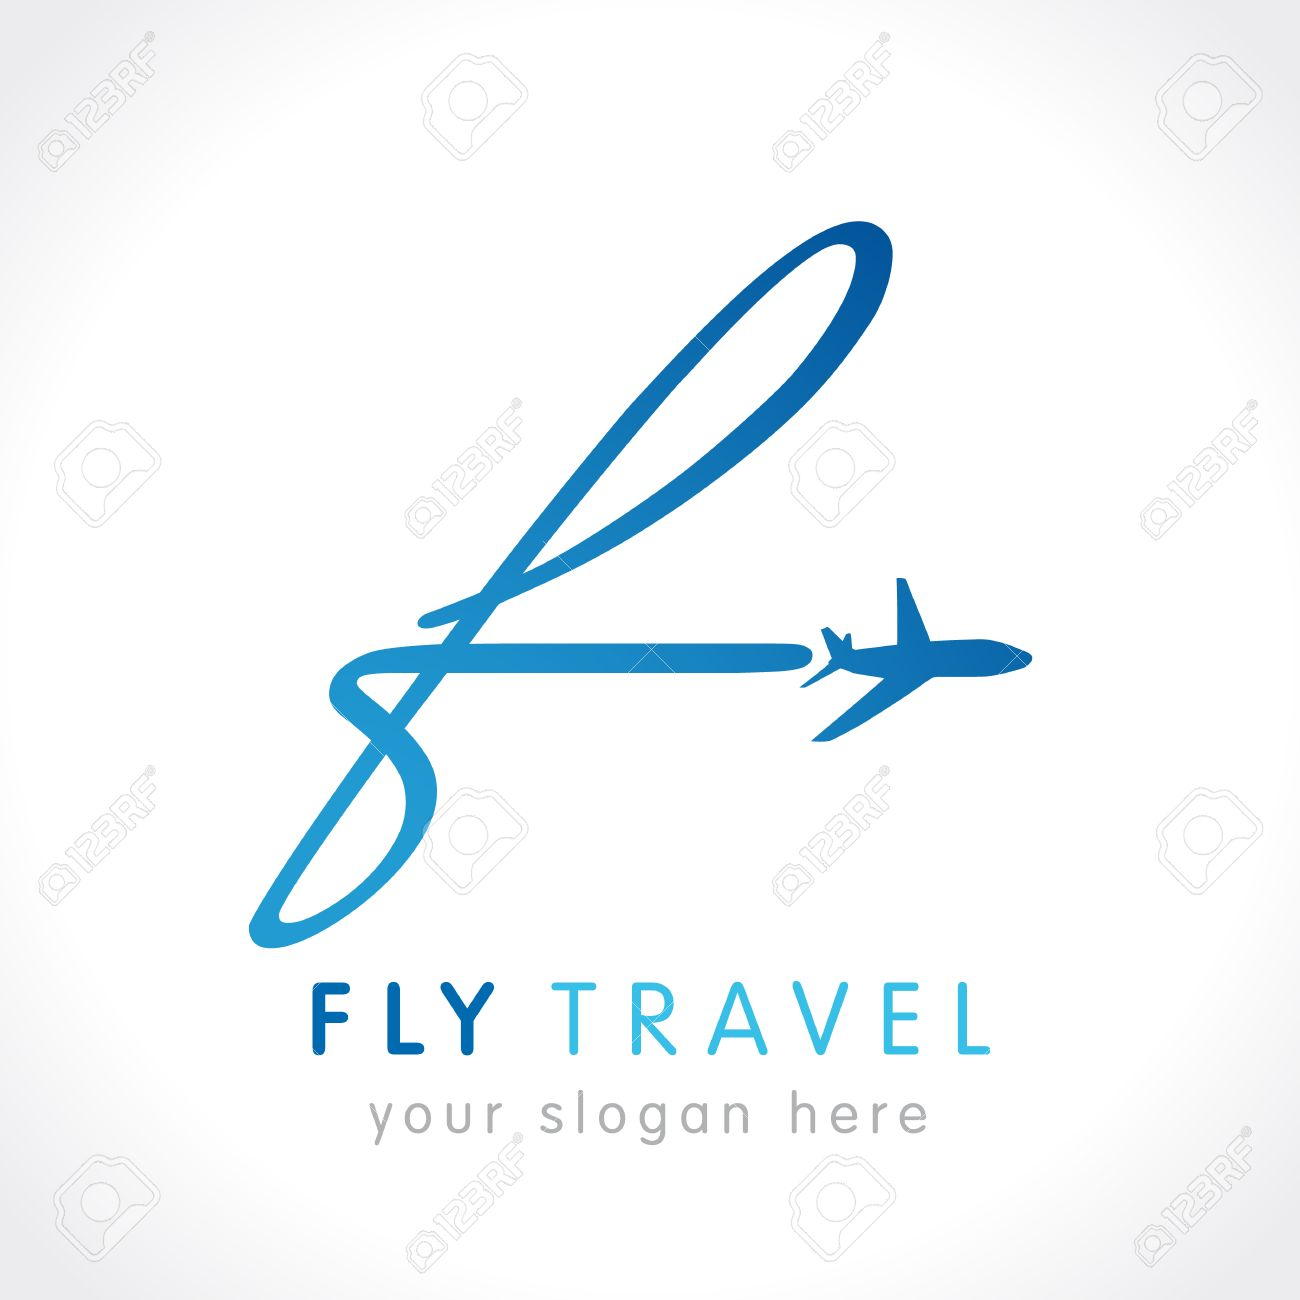 F fly travel company logo airline business travel logo design f fly travel company logo airline business travel logo design with letter thecheapjerseys Gallery